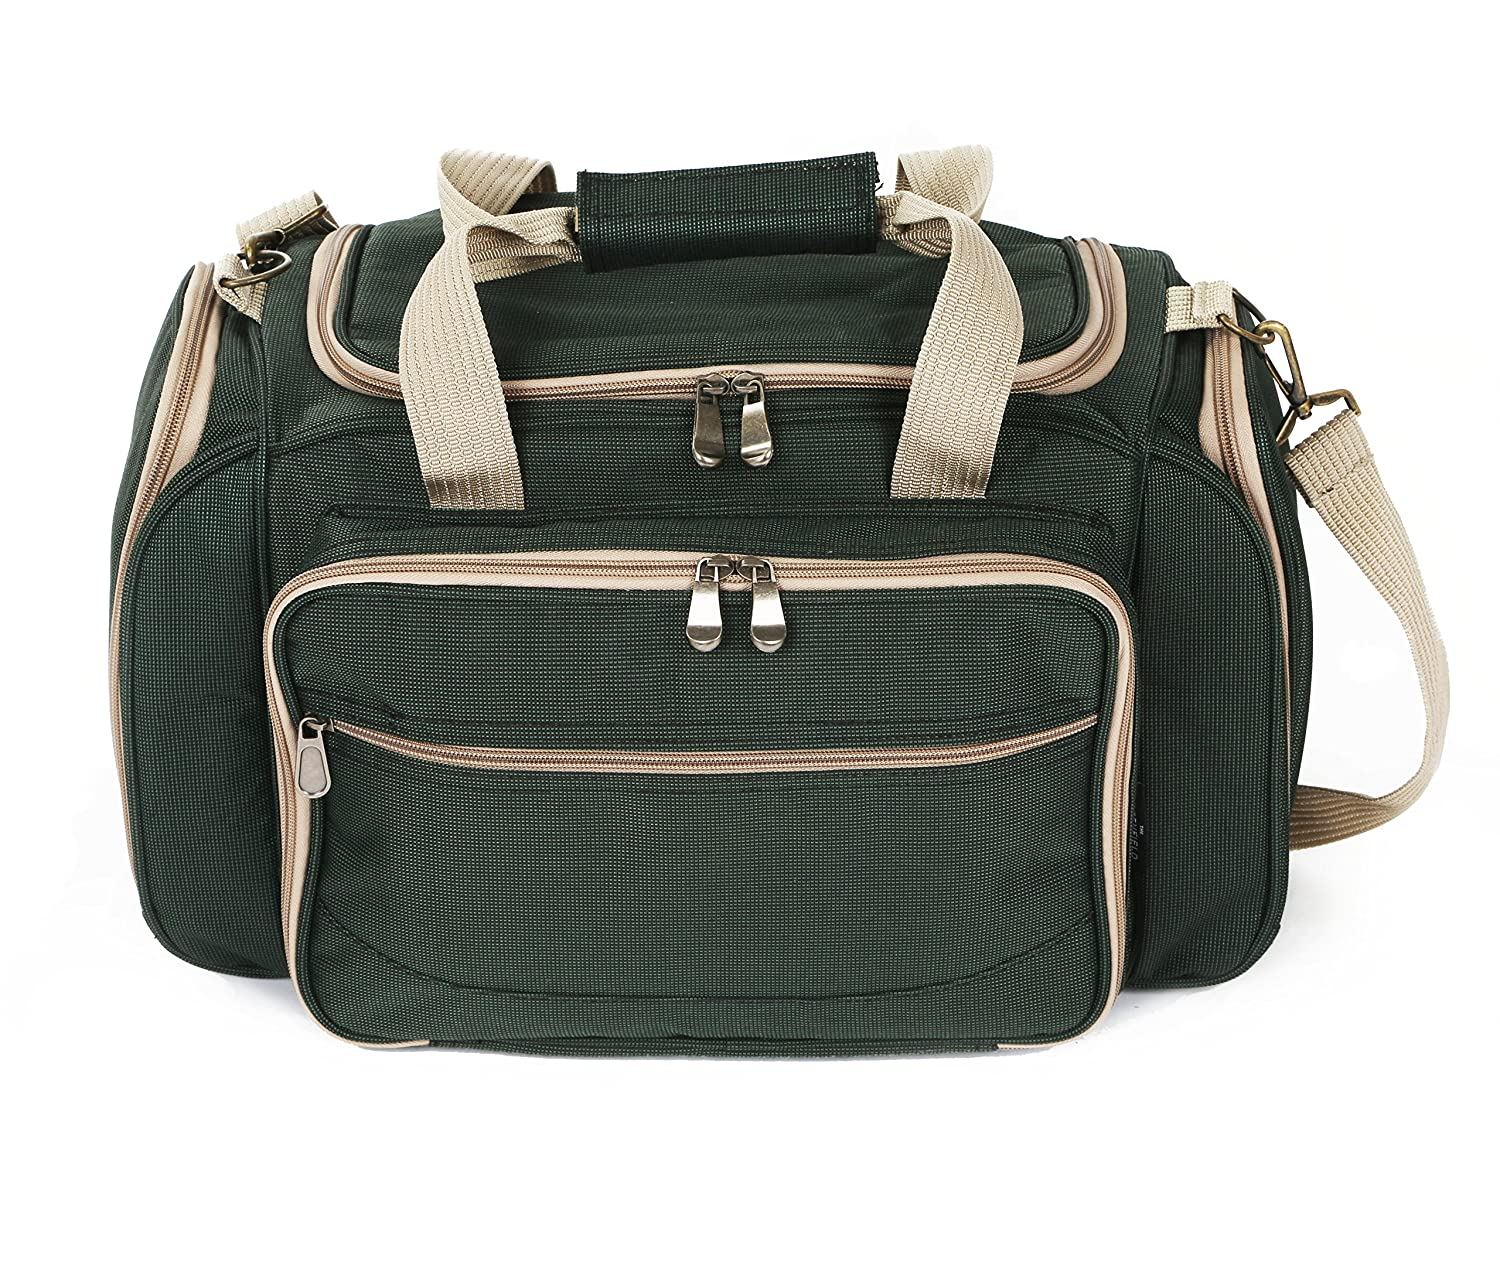 Greenfield Collection Bolsa térmica Deluxe para Cuatro Personas Verde Bosque BPH4DGH-Bolsa, Color, 29x45x23 cm